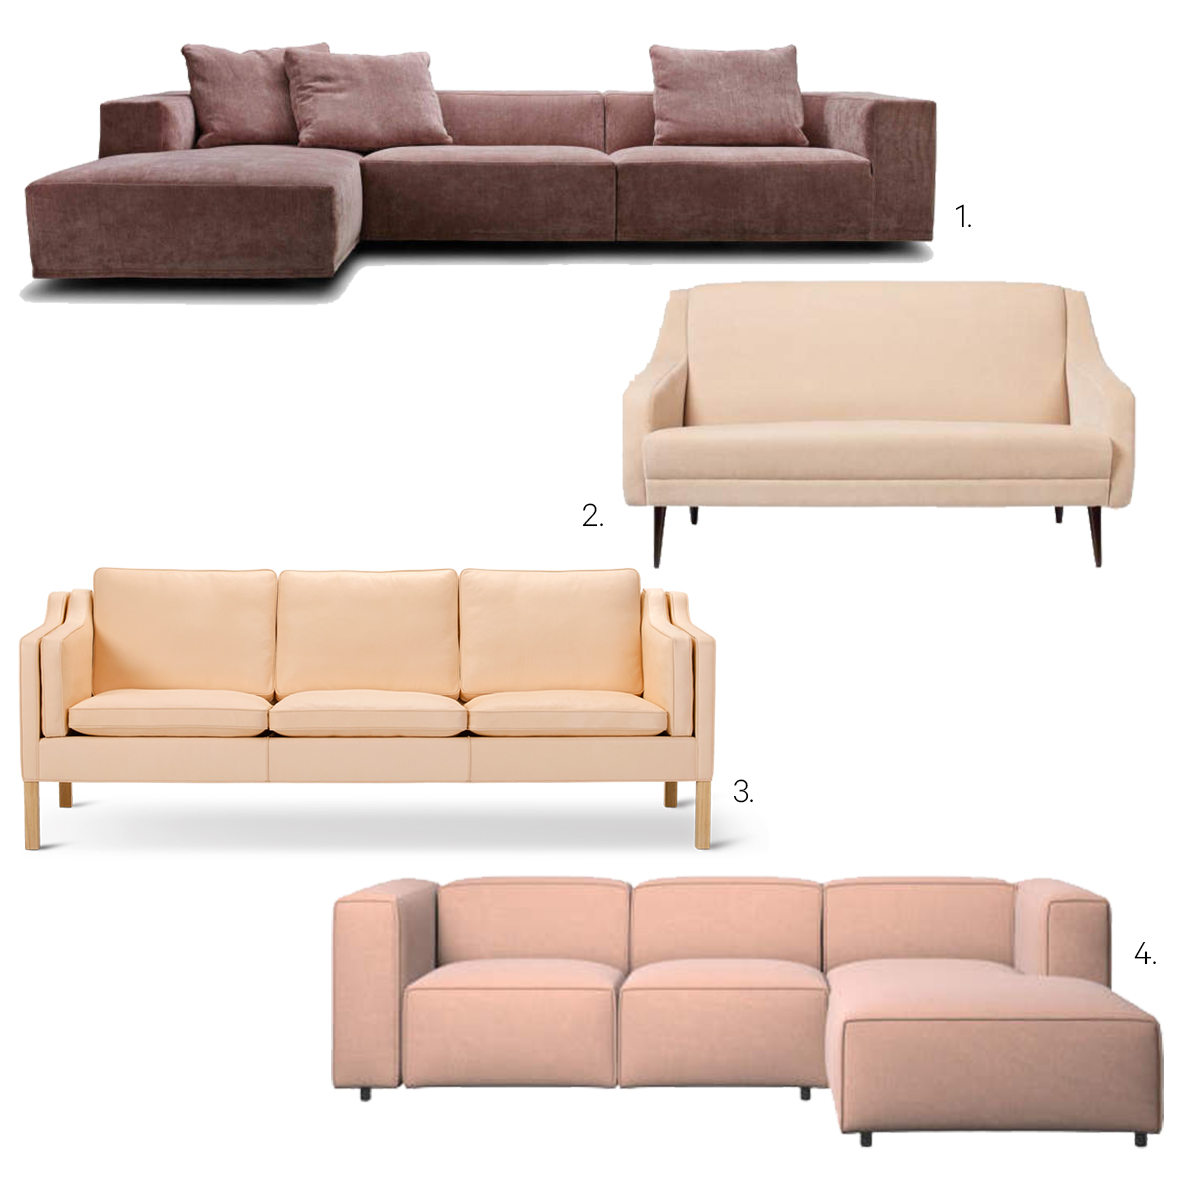 Rund Sofa Ilva Shopping 101 Sofaer Kæmpe Sofa Guide